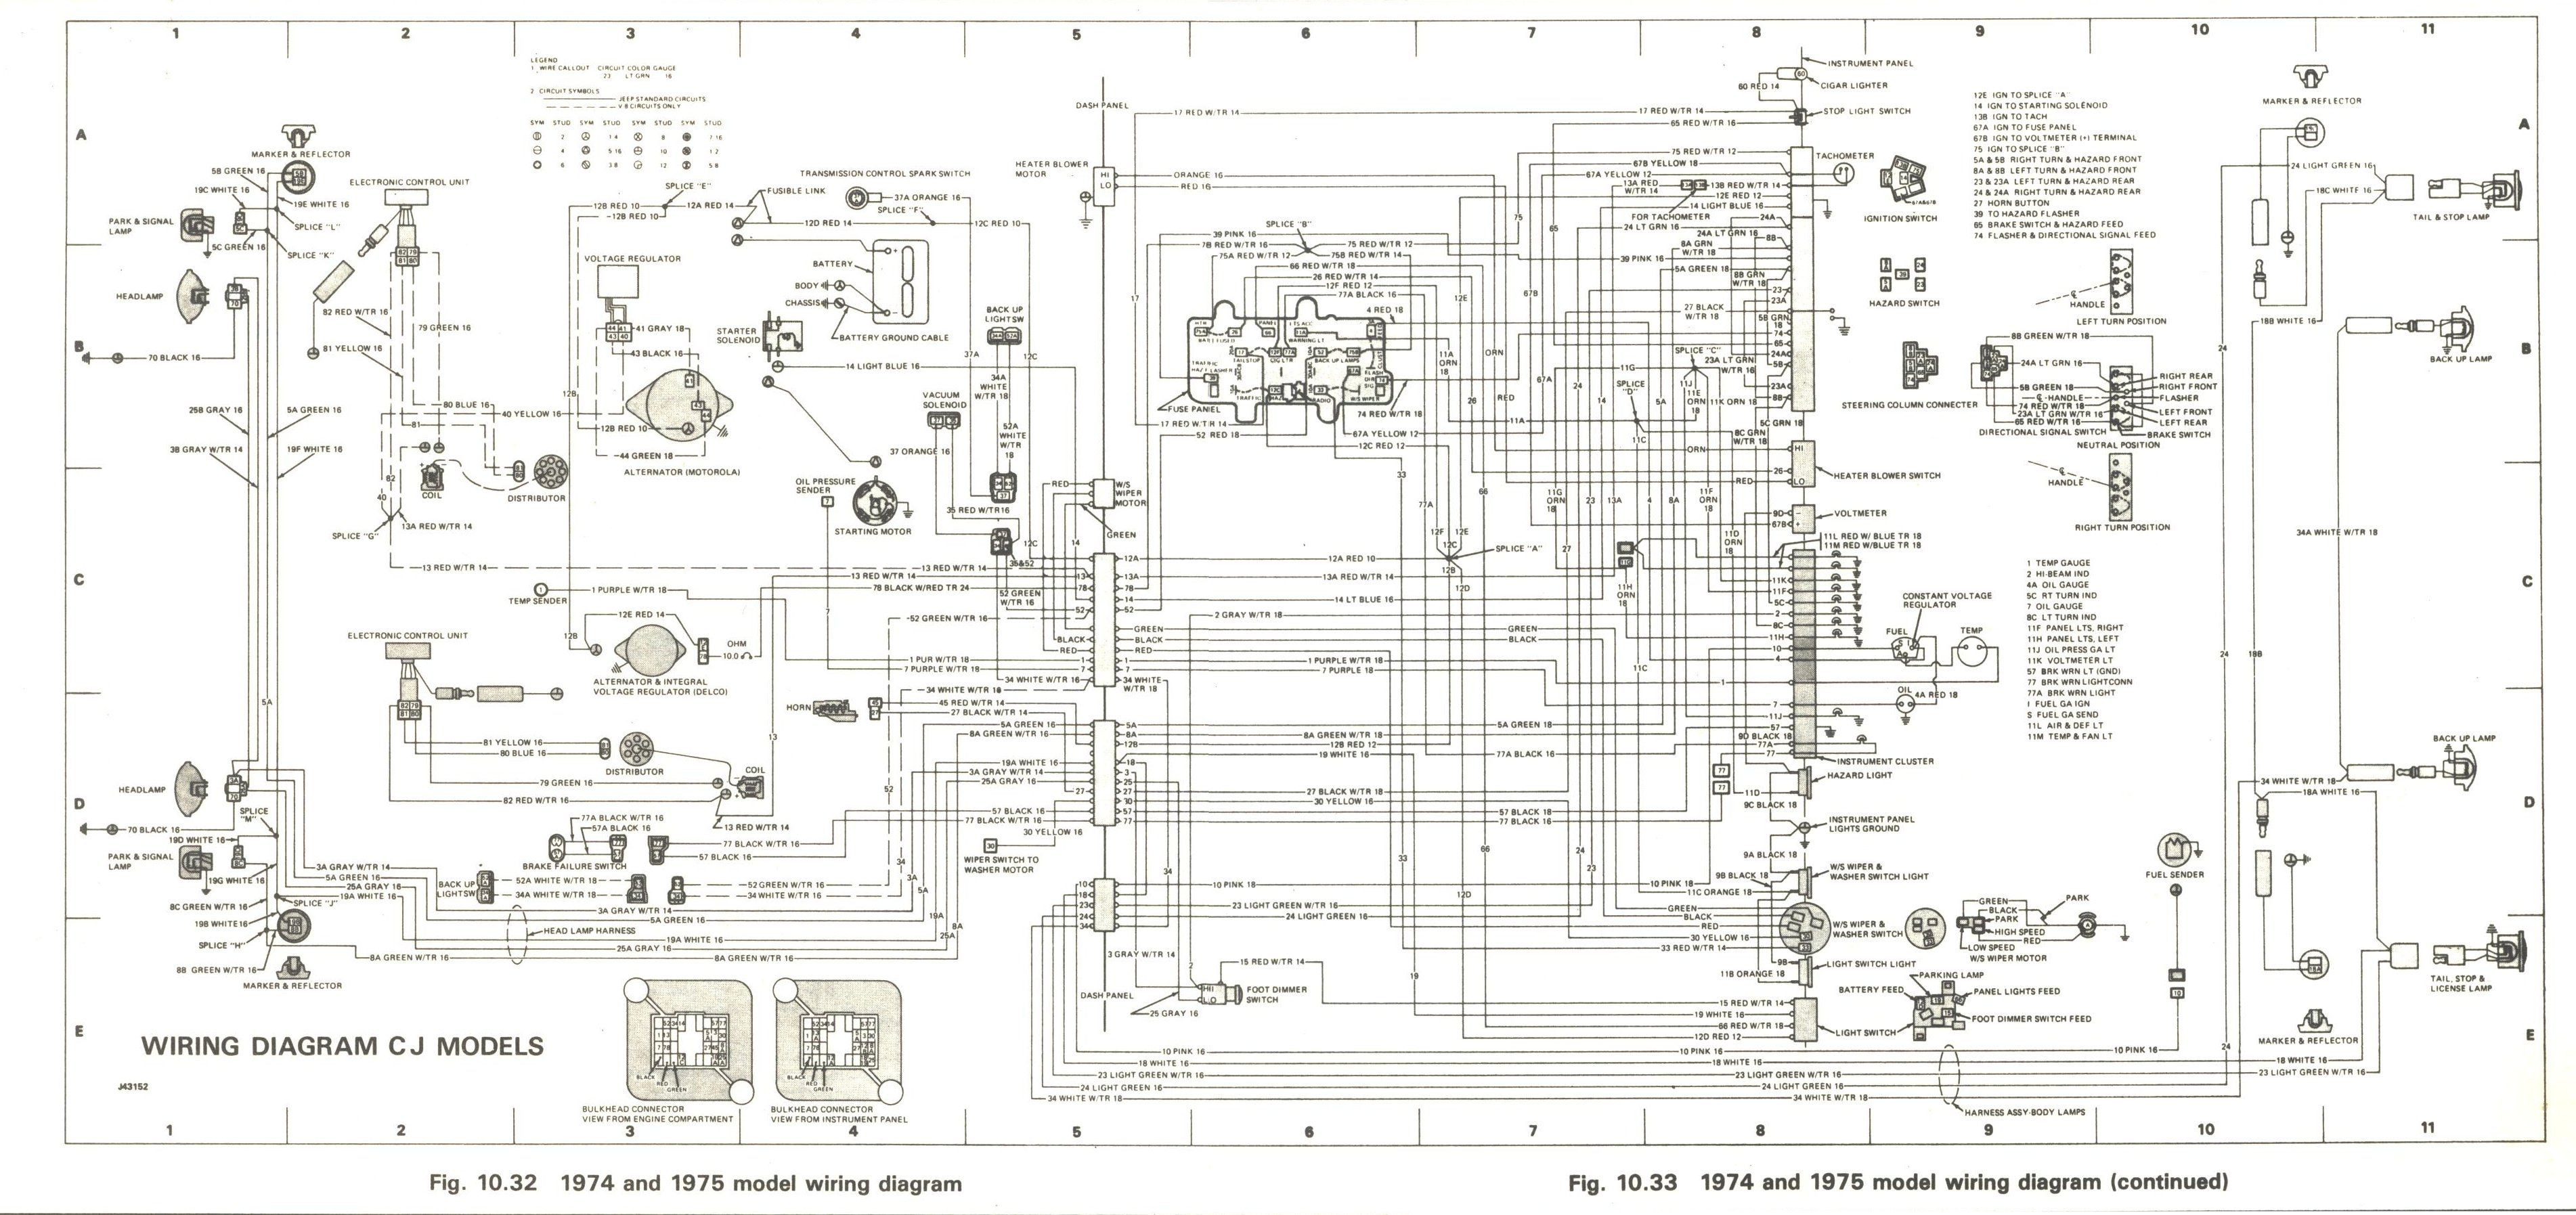 1980 Cj5 Wiring Diagram Furthermore Jeep Cj7 Tachometer Basic Along With Steering Column